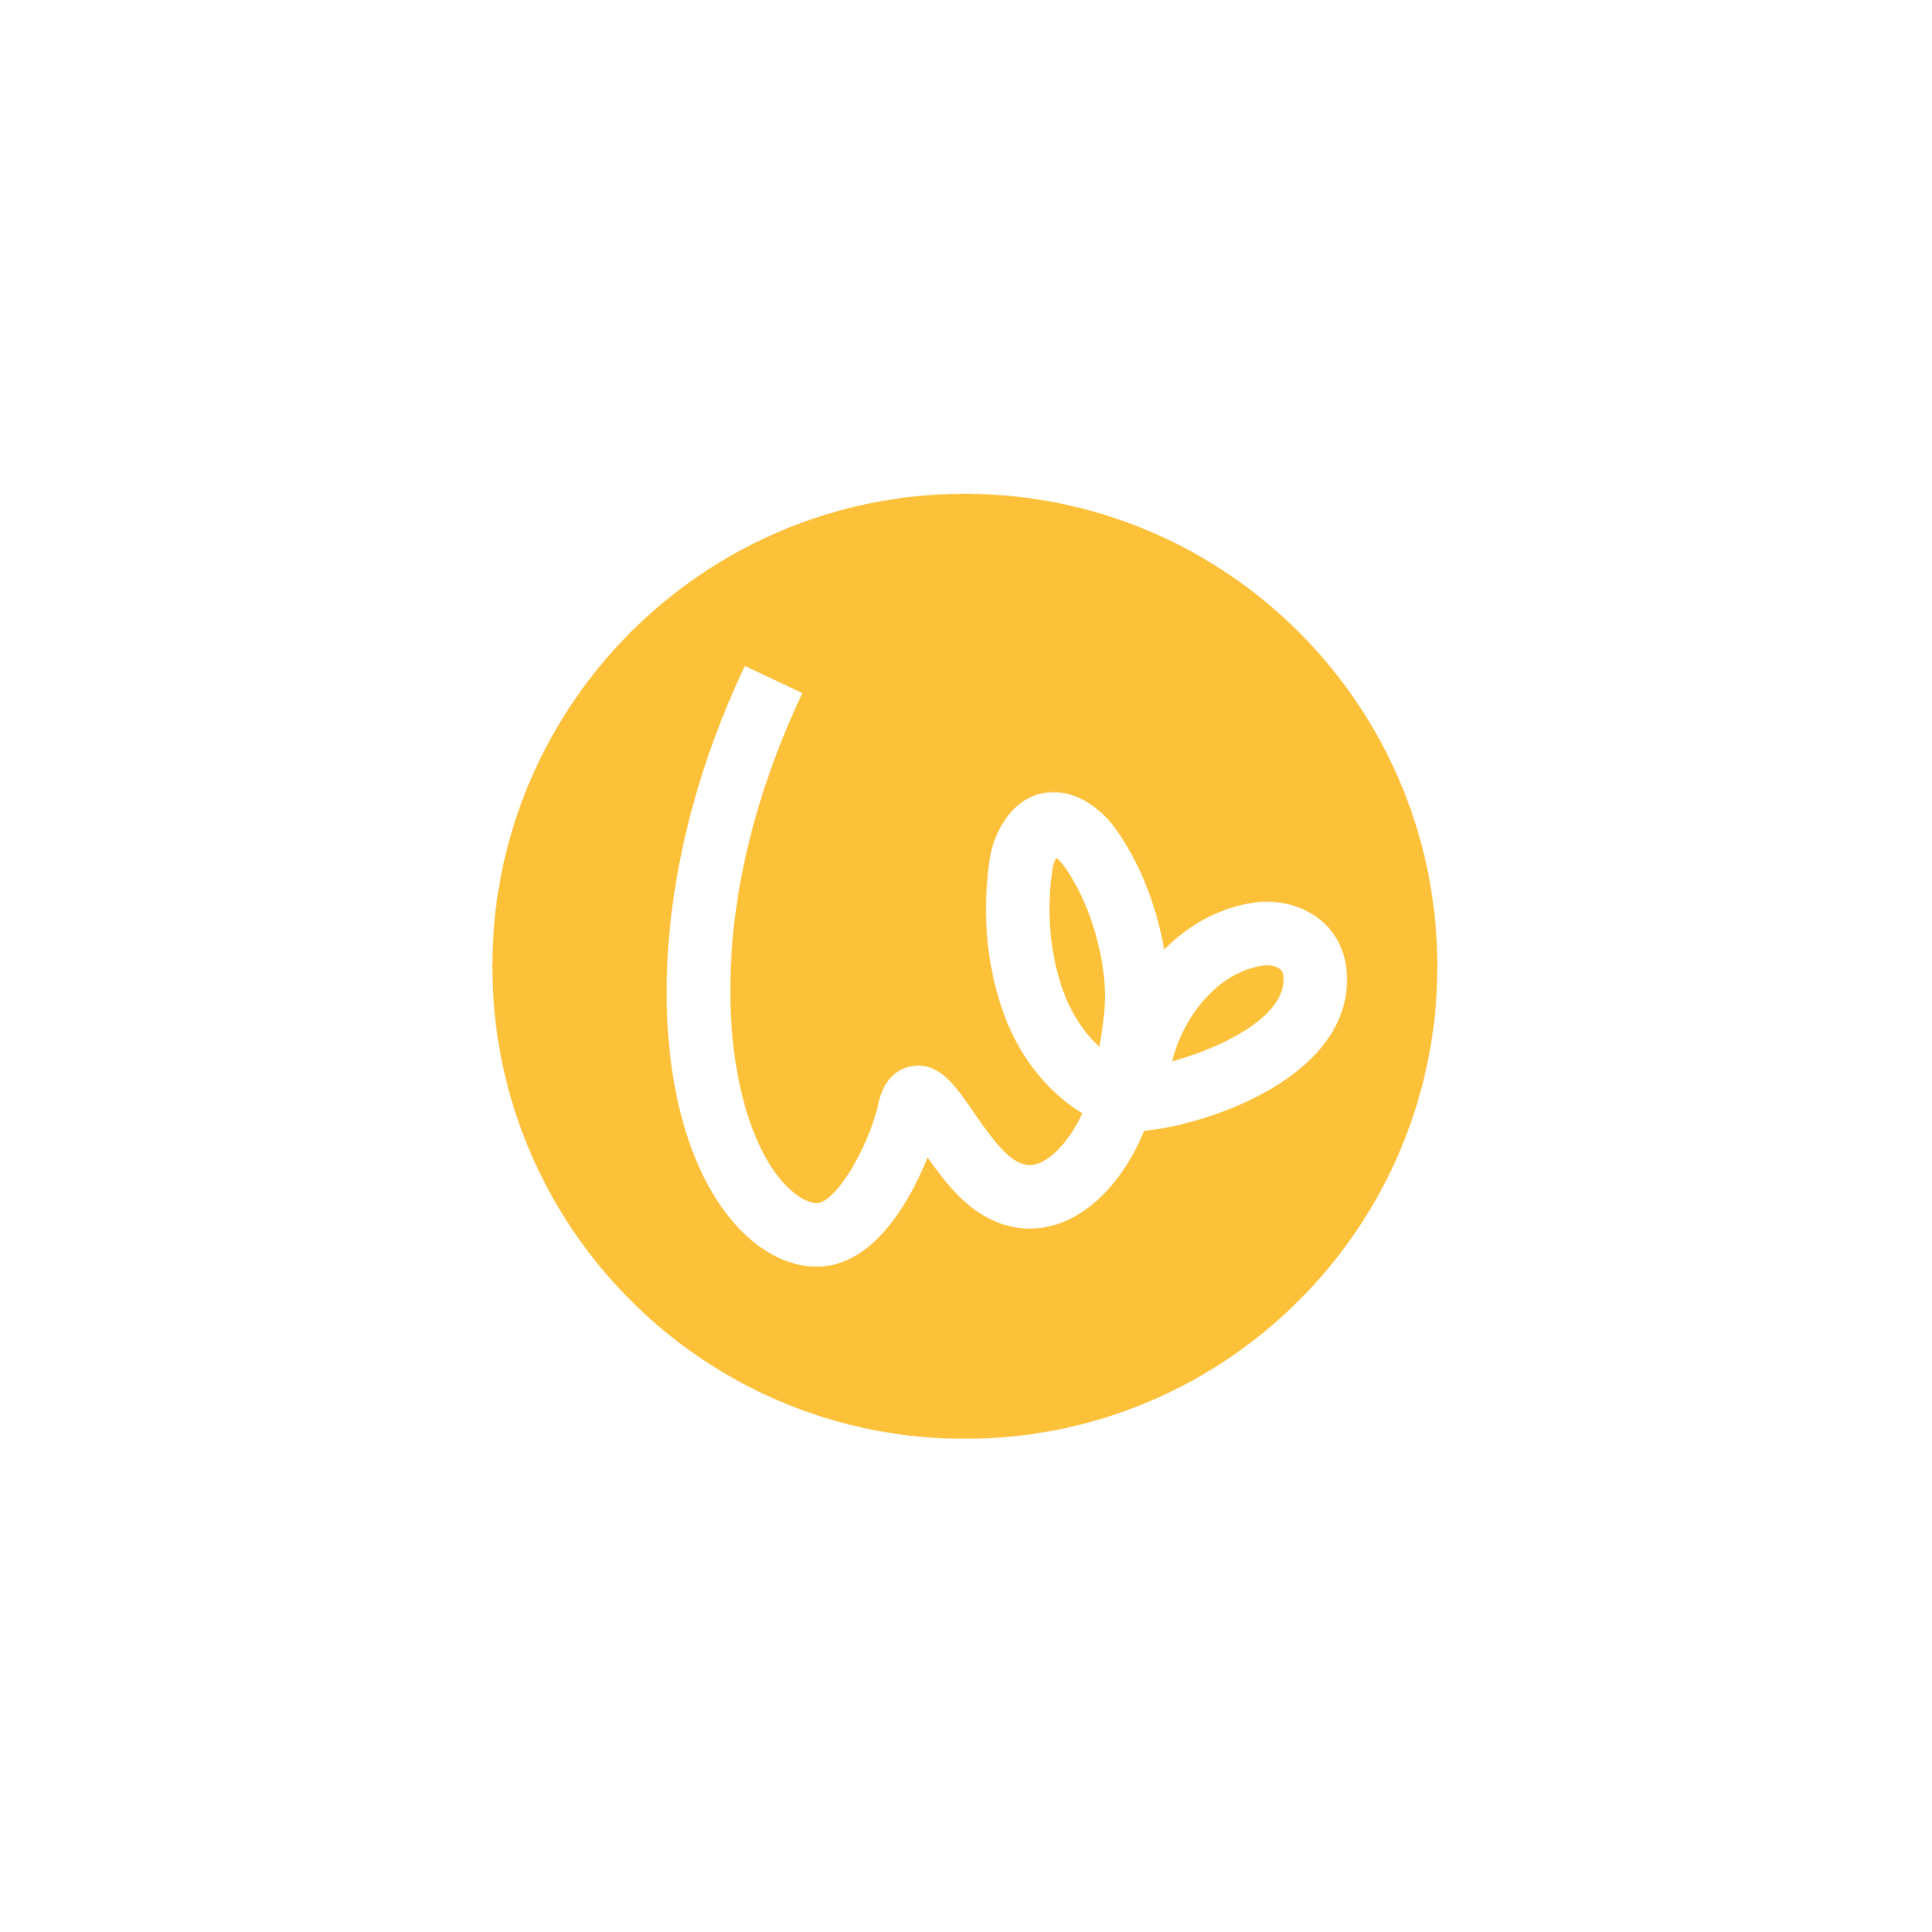 Wellbee badge logo by Ben Clark Design